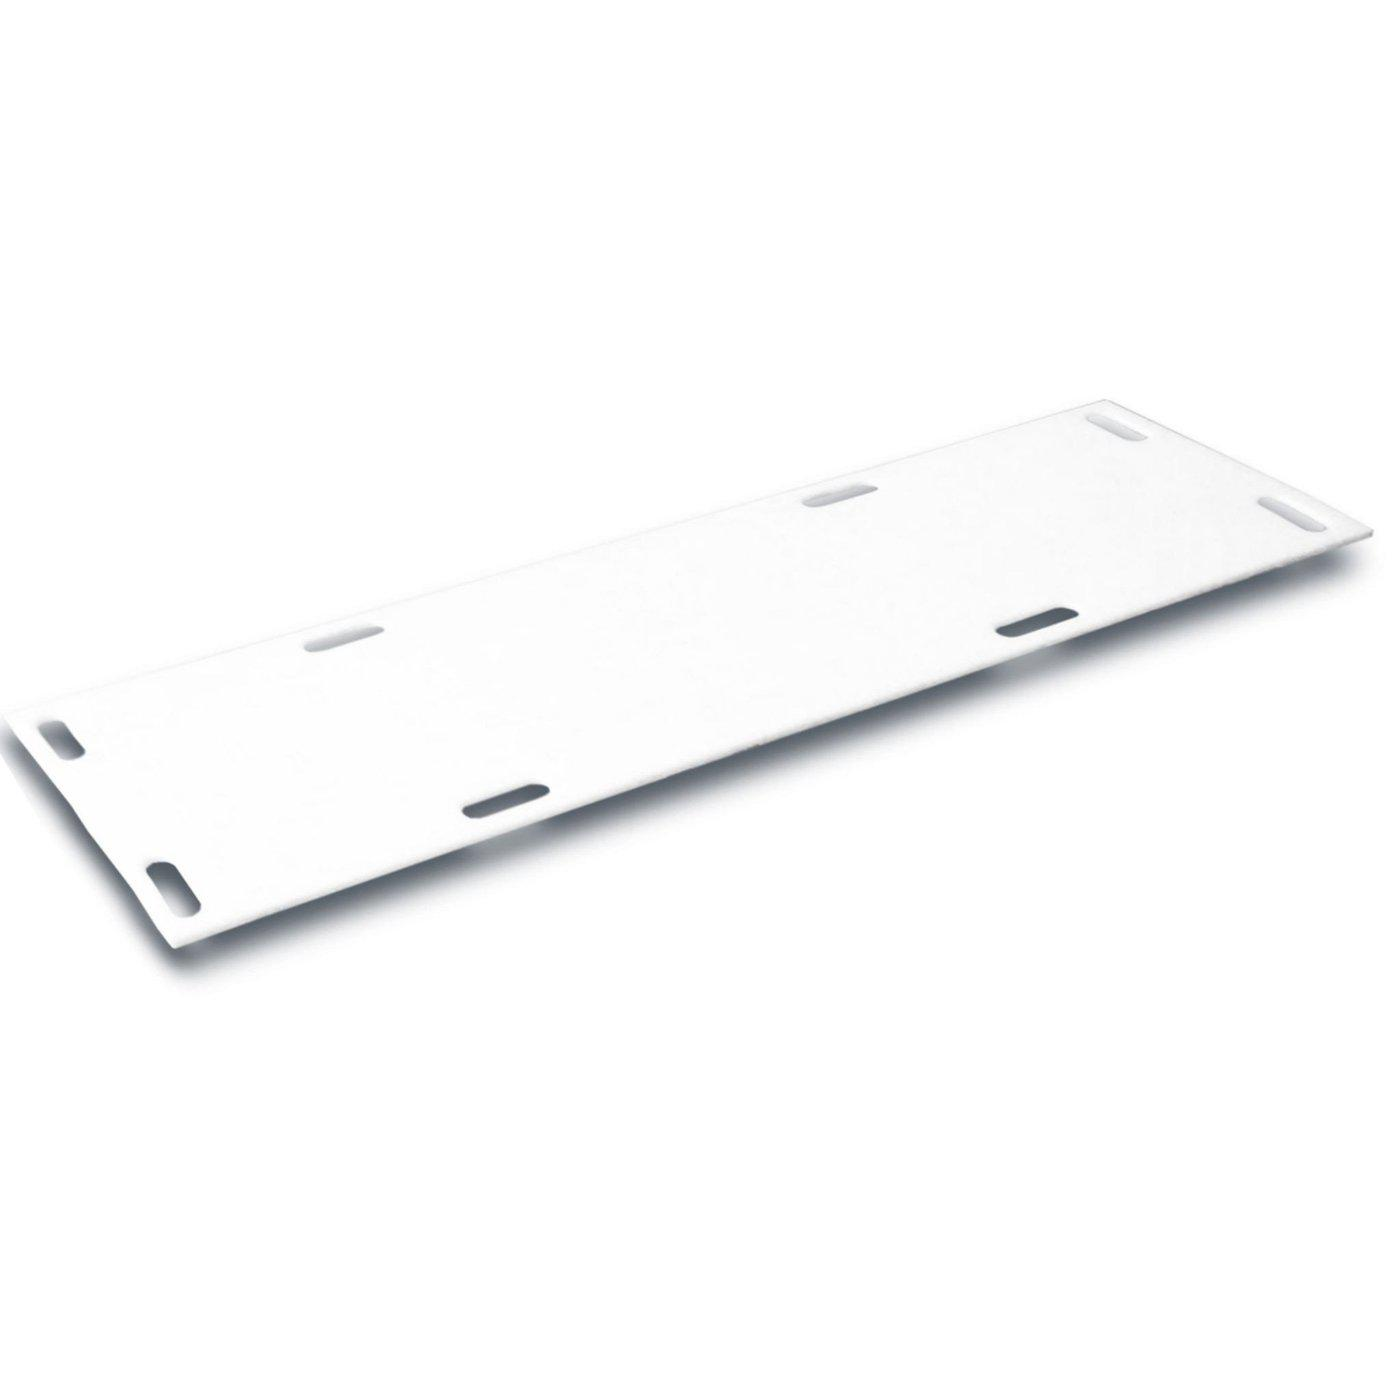 Transfer Board-Cadaver Trays-Mortech Manufacturing Company Inc. Quality Stainless Steel Autopsy, Morgue, Funeral Home, Necropsy, Veterinary / Anatomy, Dissection Equipment and Accessories